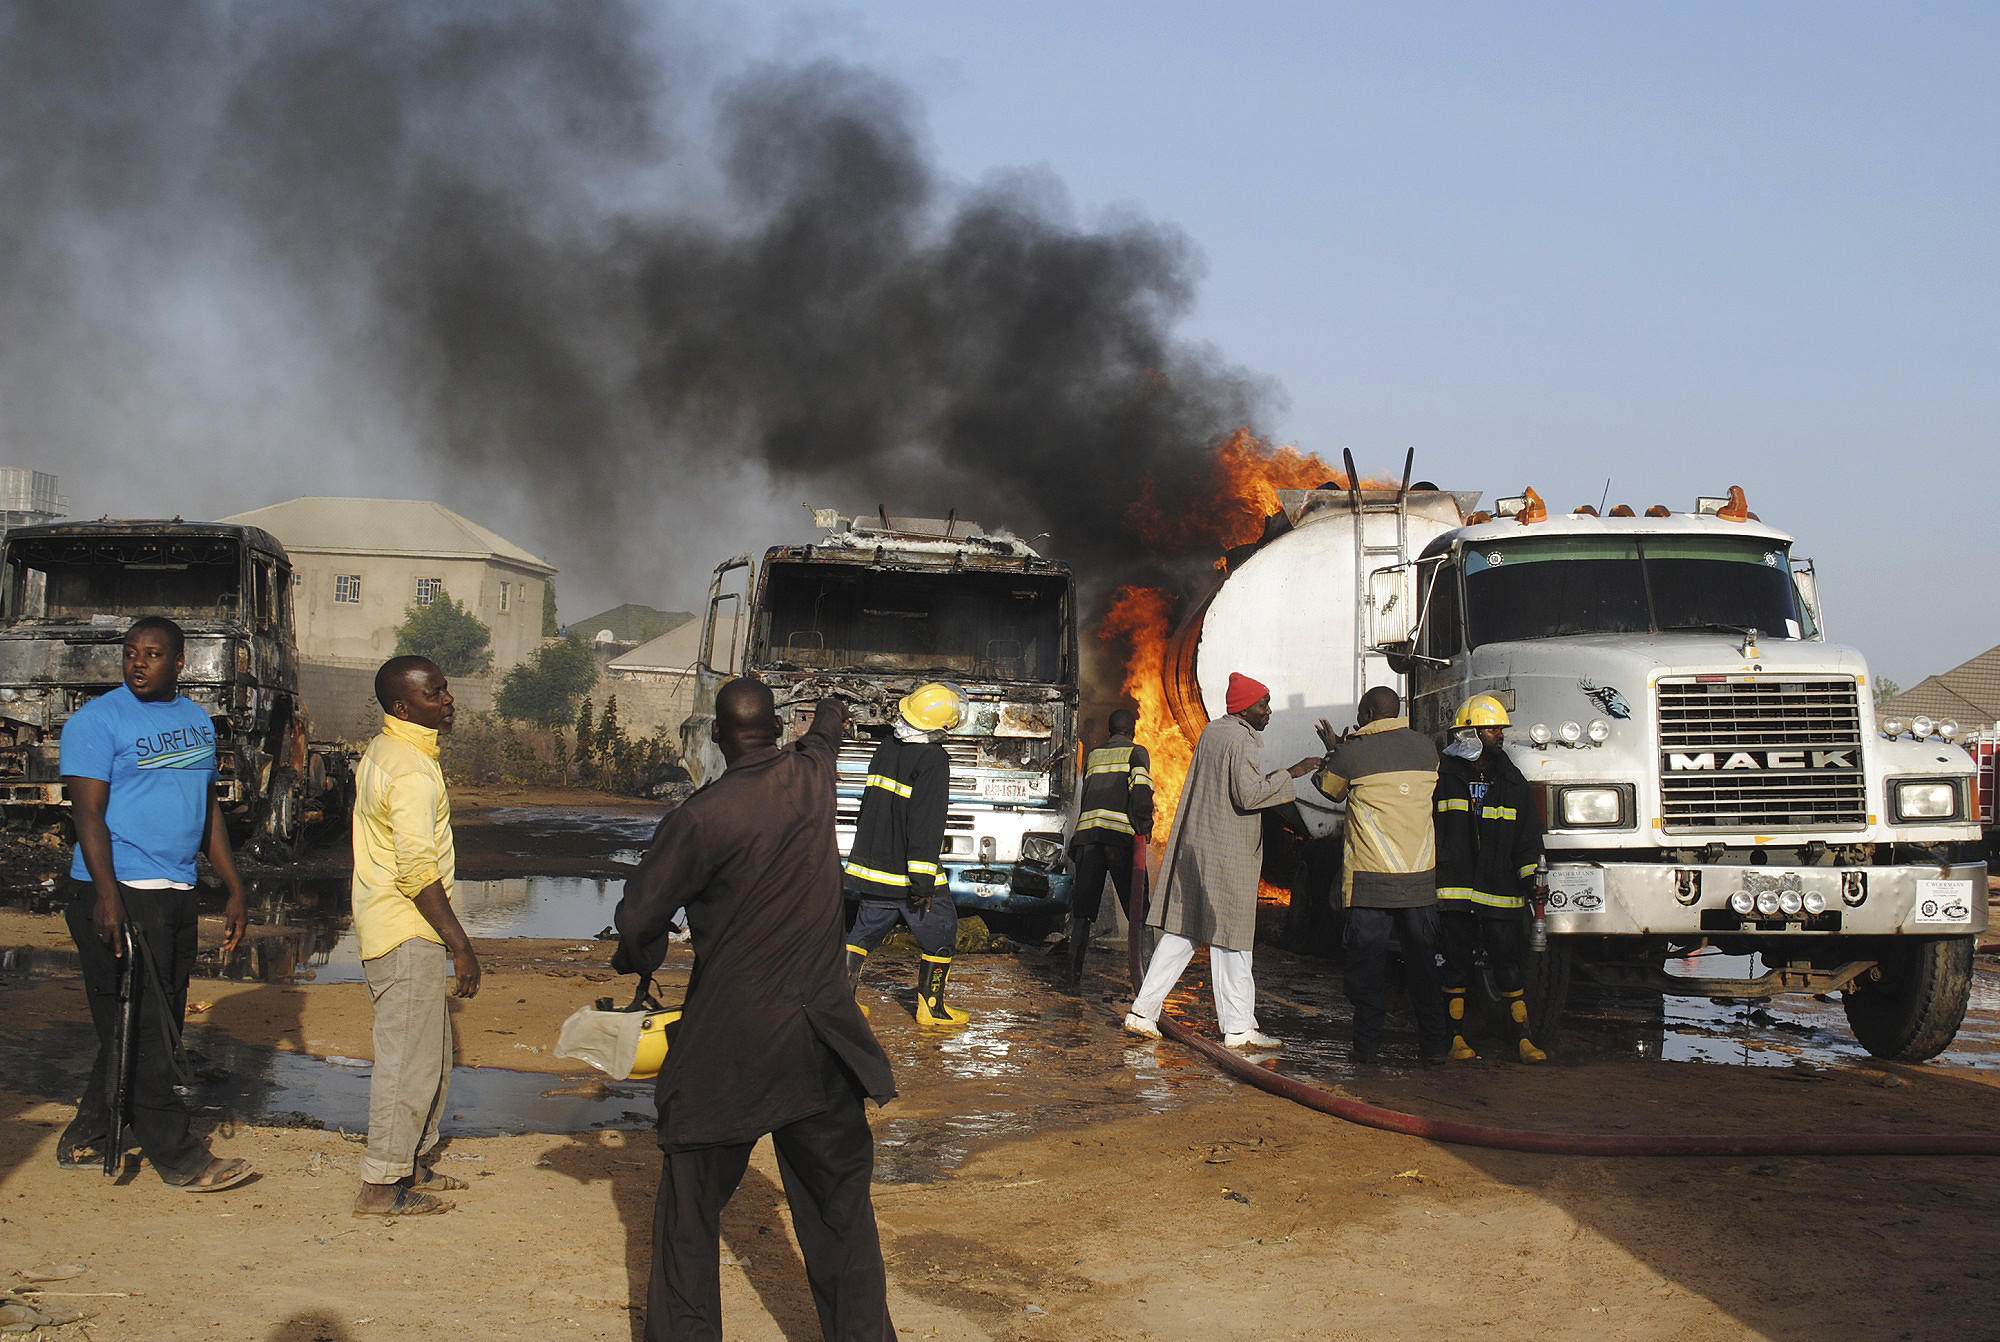 Firefighters try to contain a blaze following a suicide attack on oil tankers in Maiduguri, Nigeria, on March 3. (Jossy Ola / Associated Press)